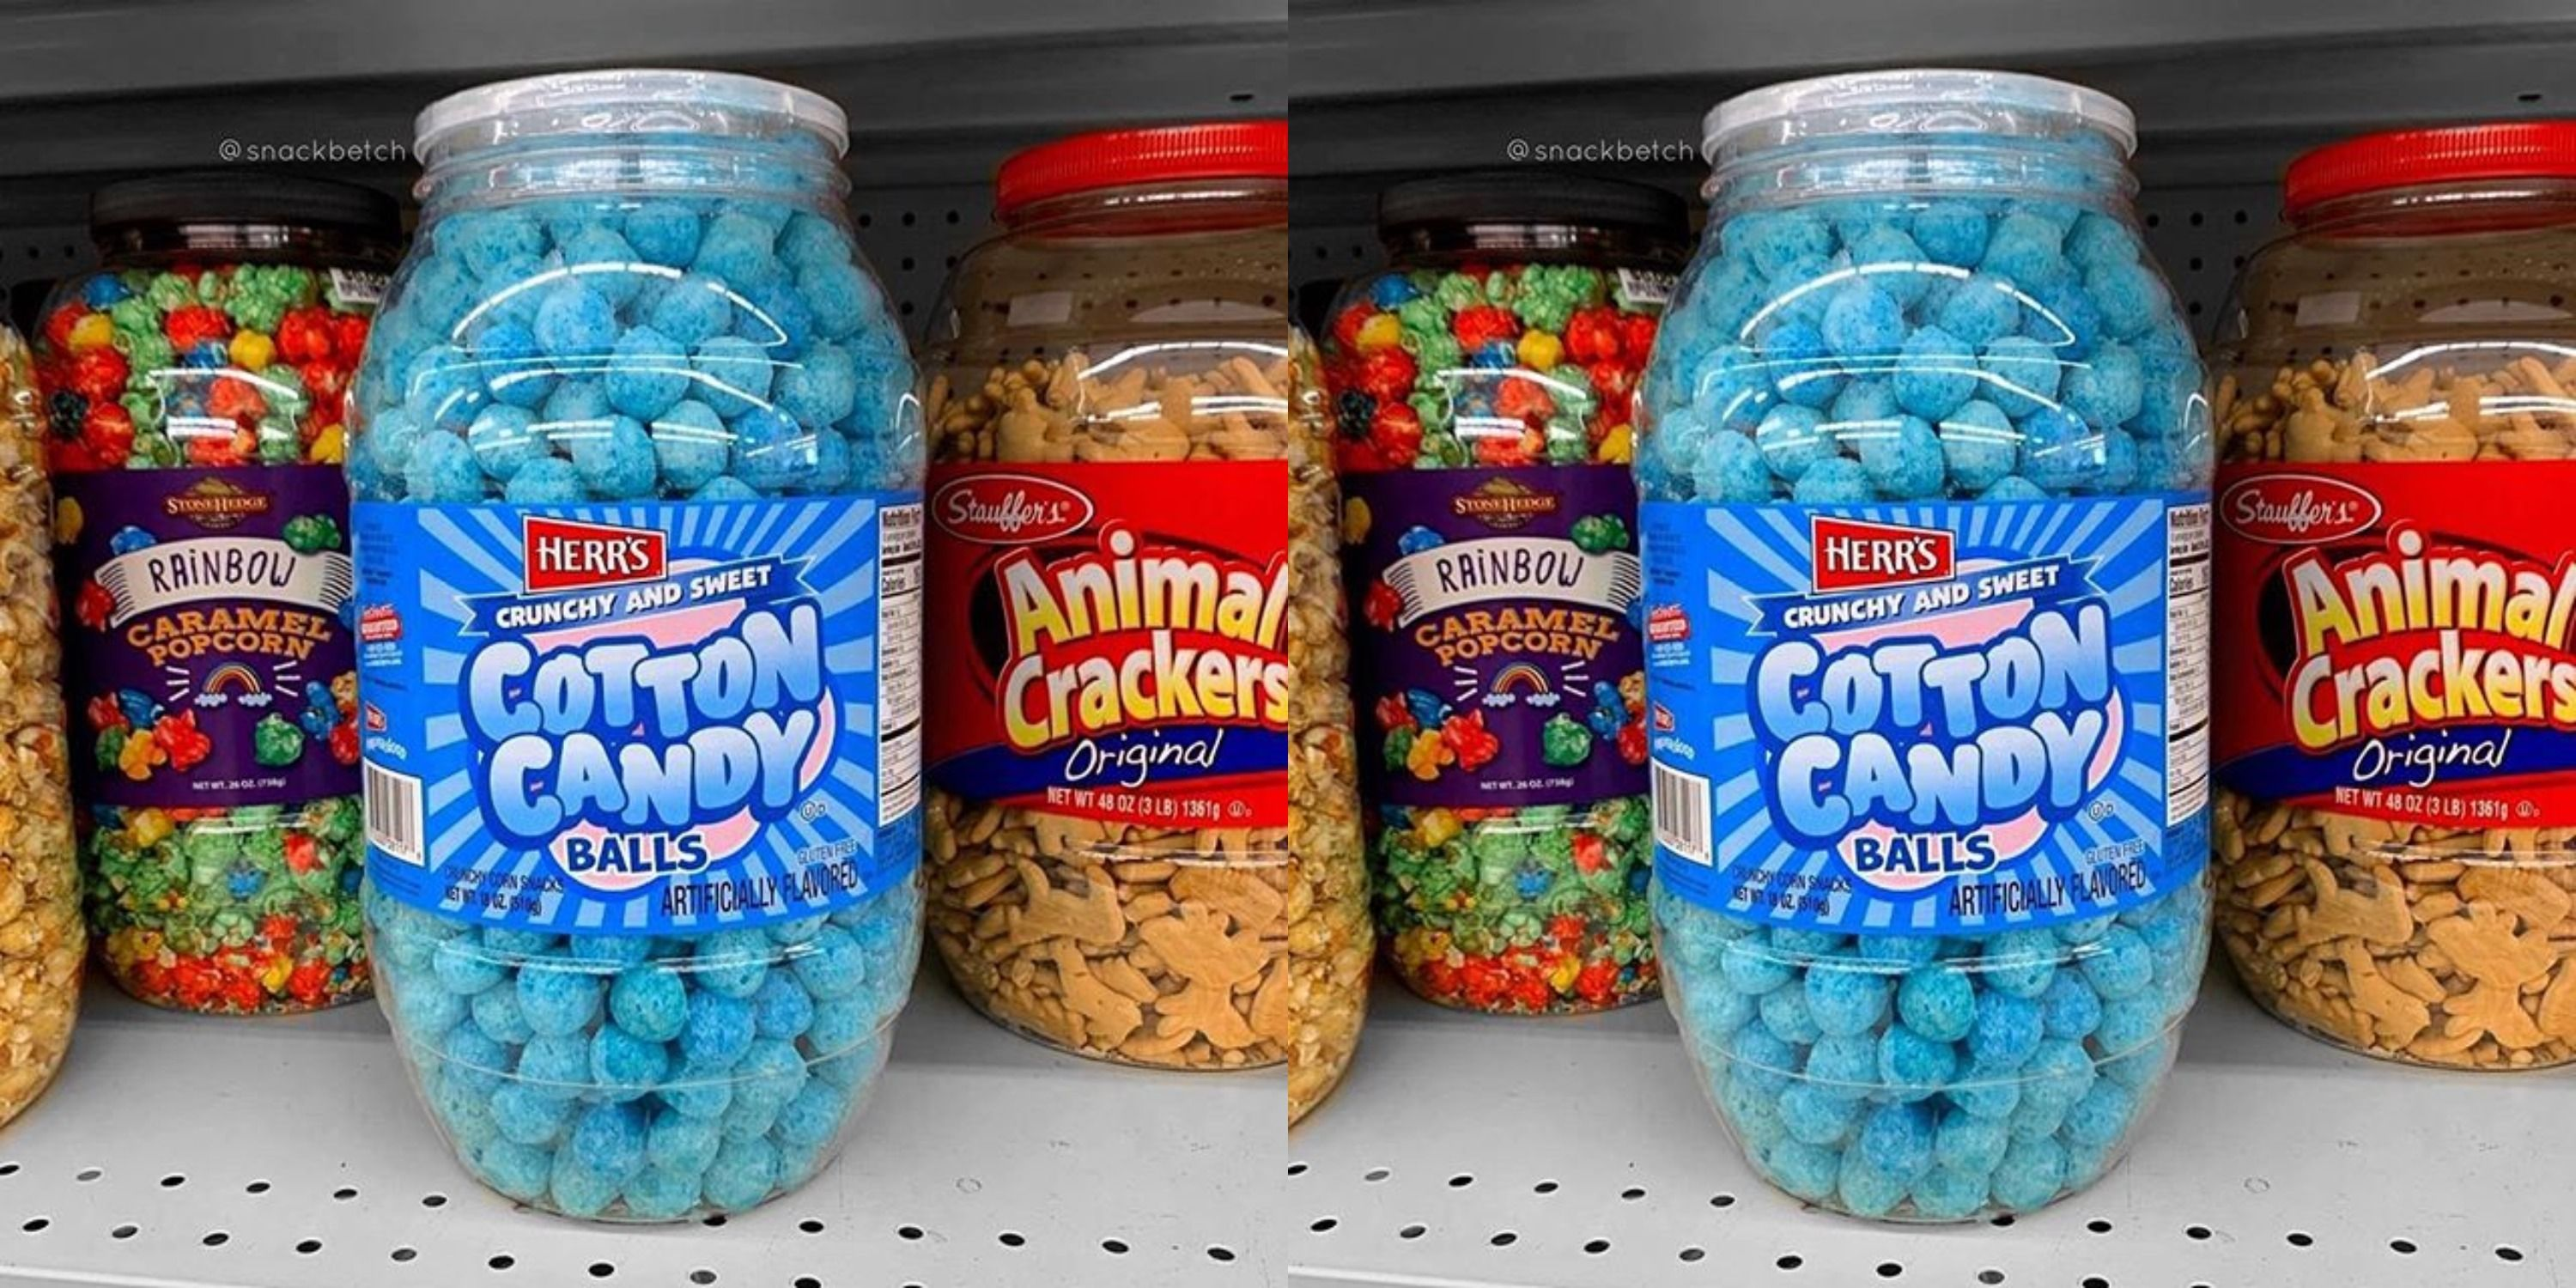 You Can Buy A Tub Of Cotton Candy Balls But, Um, Would You Even Want To?